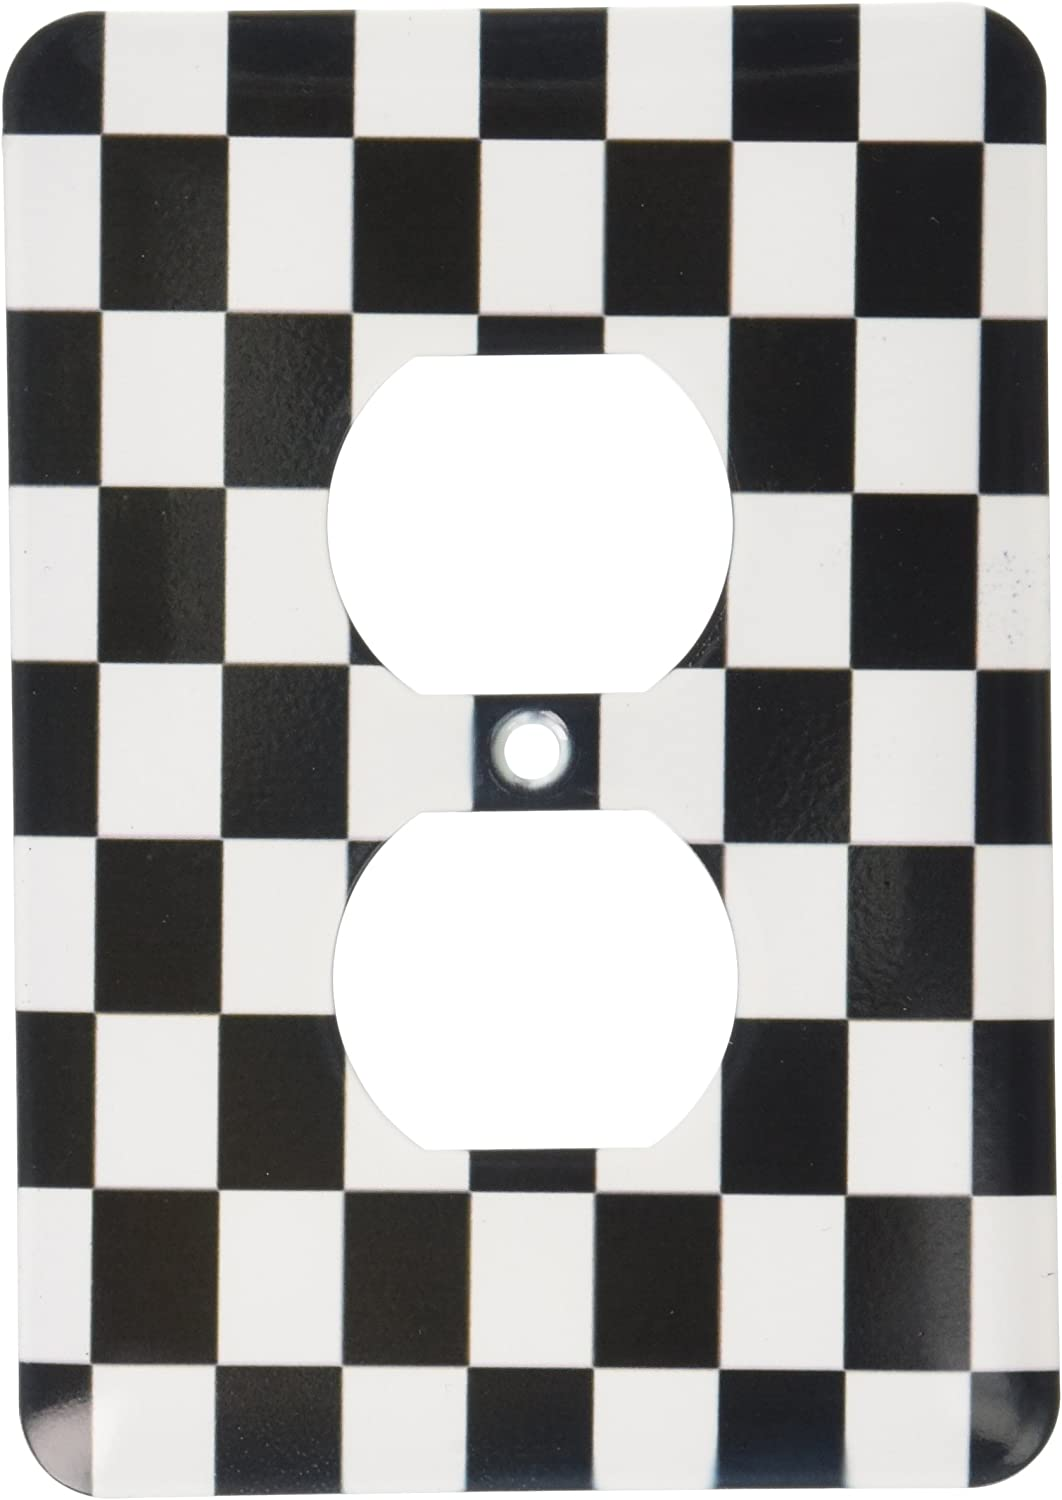 3dRose LLC 3dRose LLC lsp_154527_6 Check black and white pattern - checkered checked squares chess checkerboard or racing car race flag - 2 Plug Outlet Cover